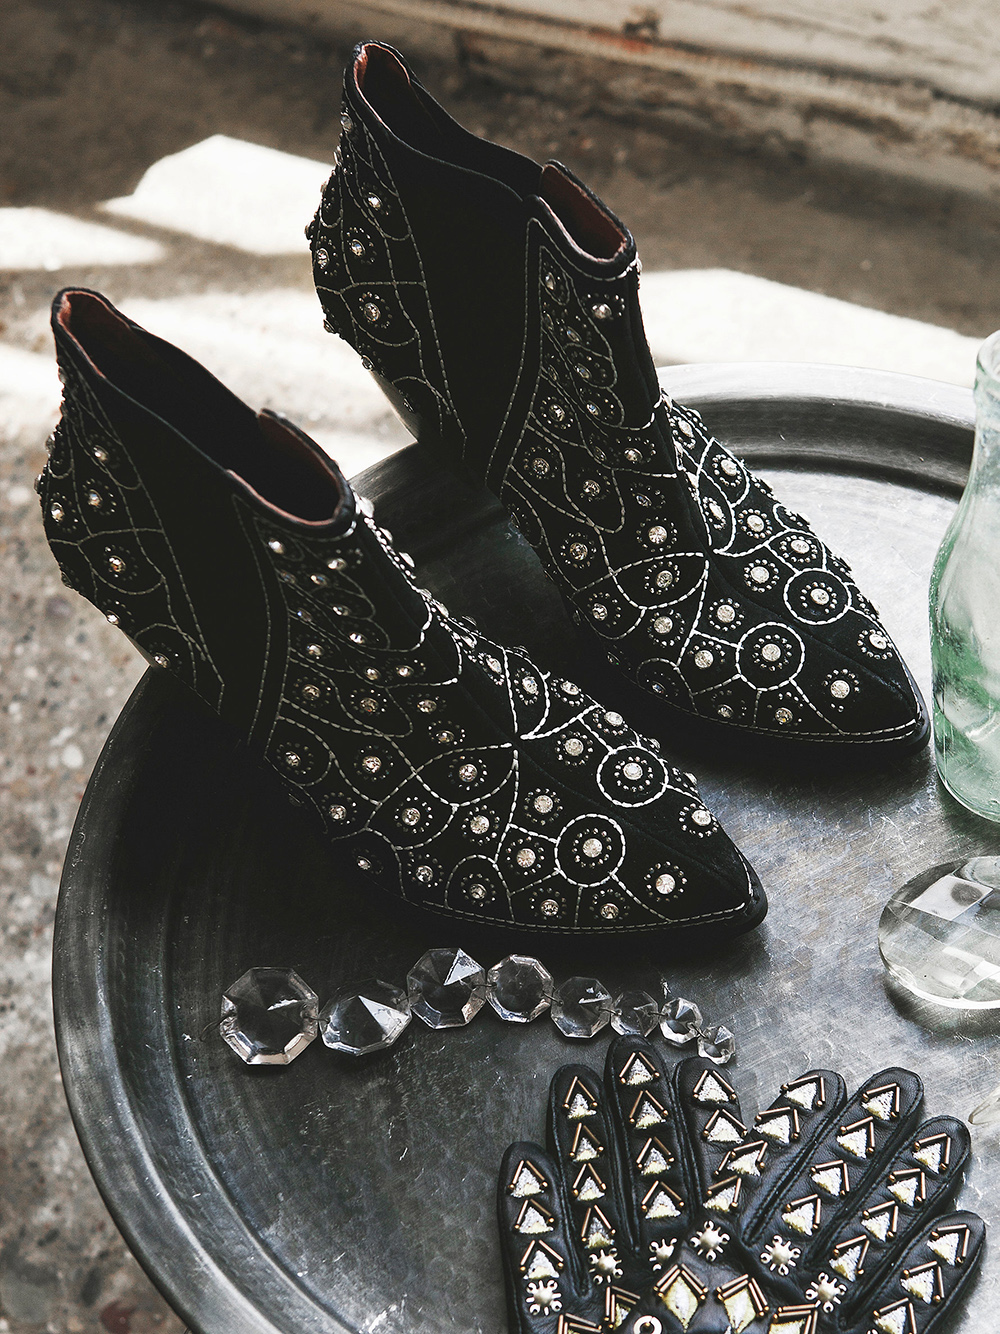 Western Inspired Boots - Jeffrey Campbell x Free People After Dark Boot